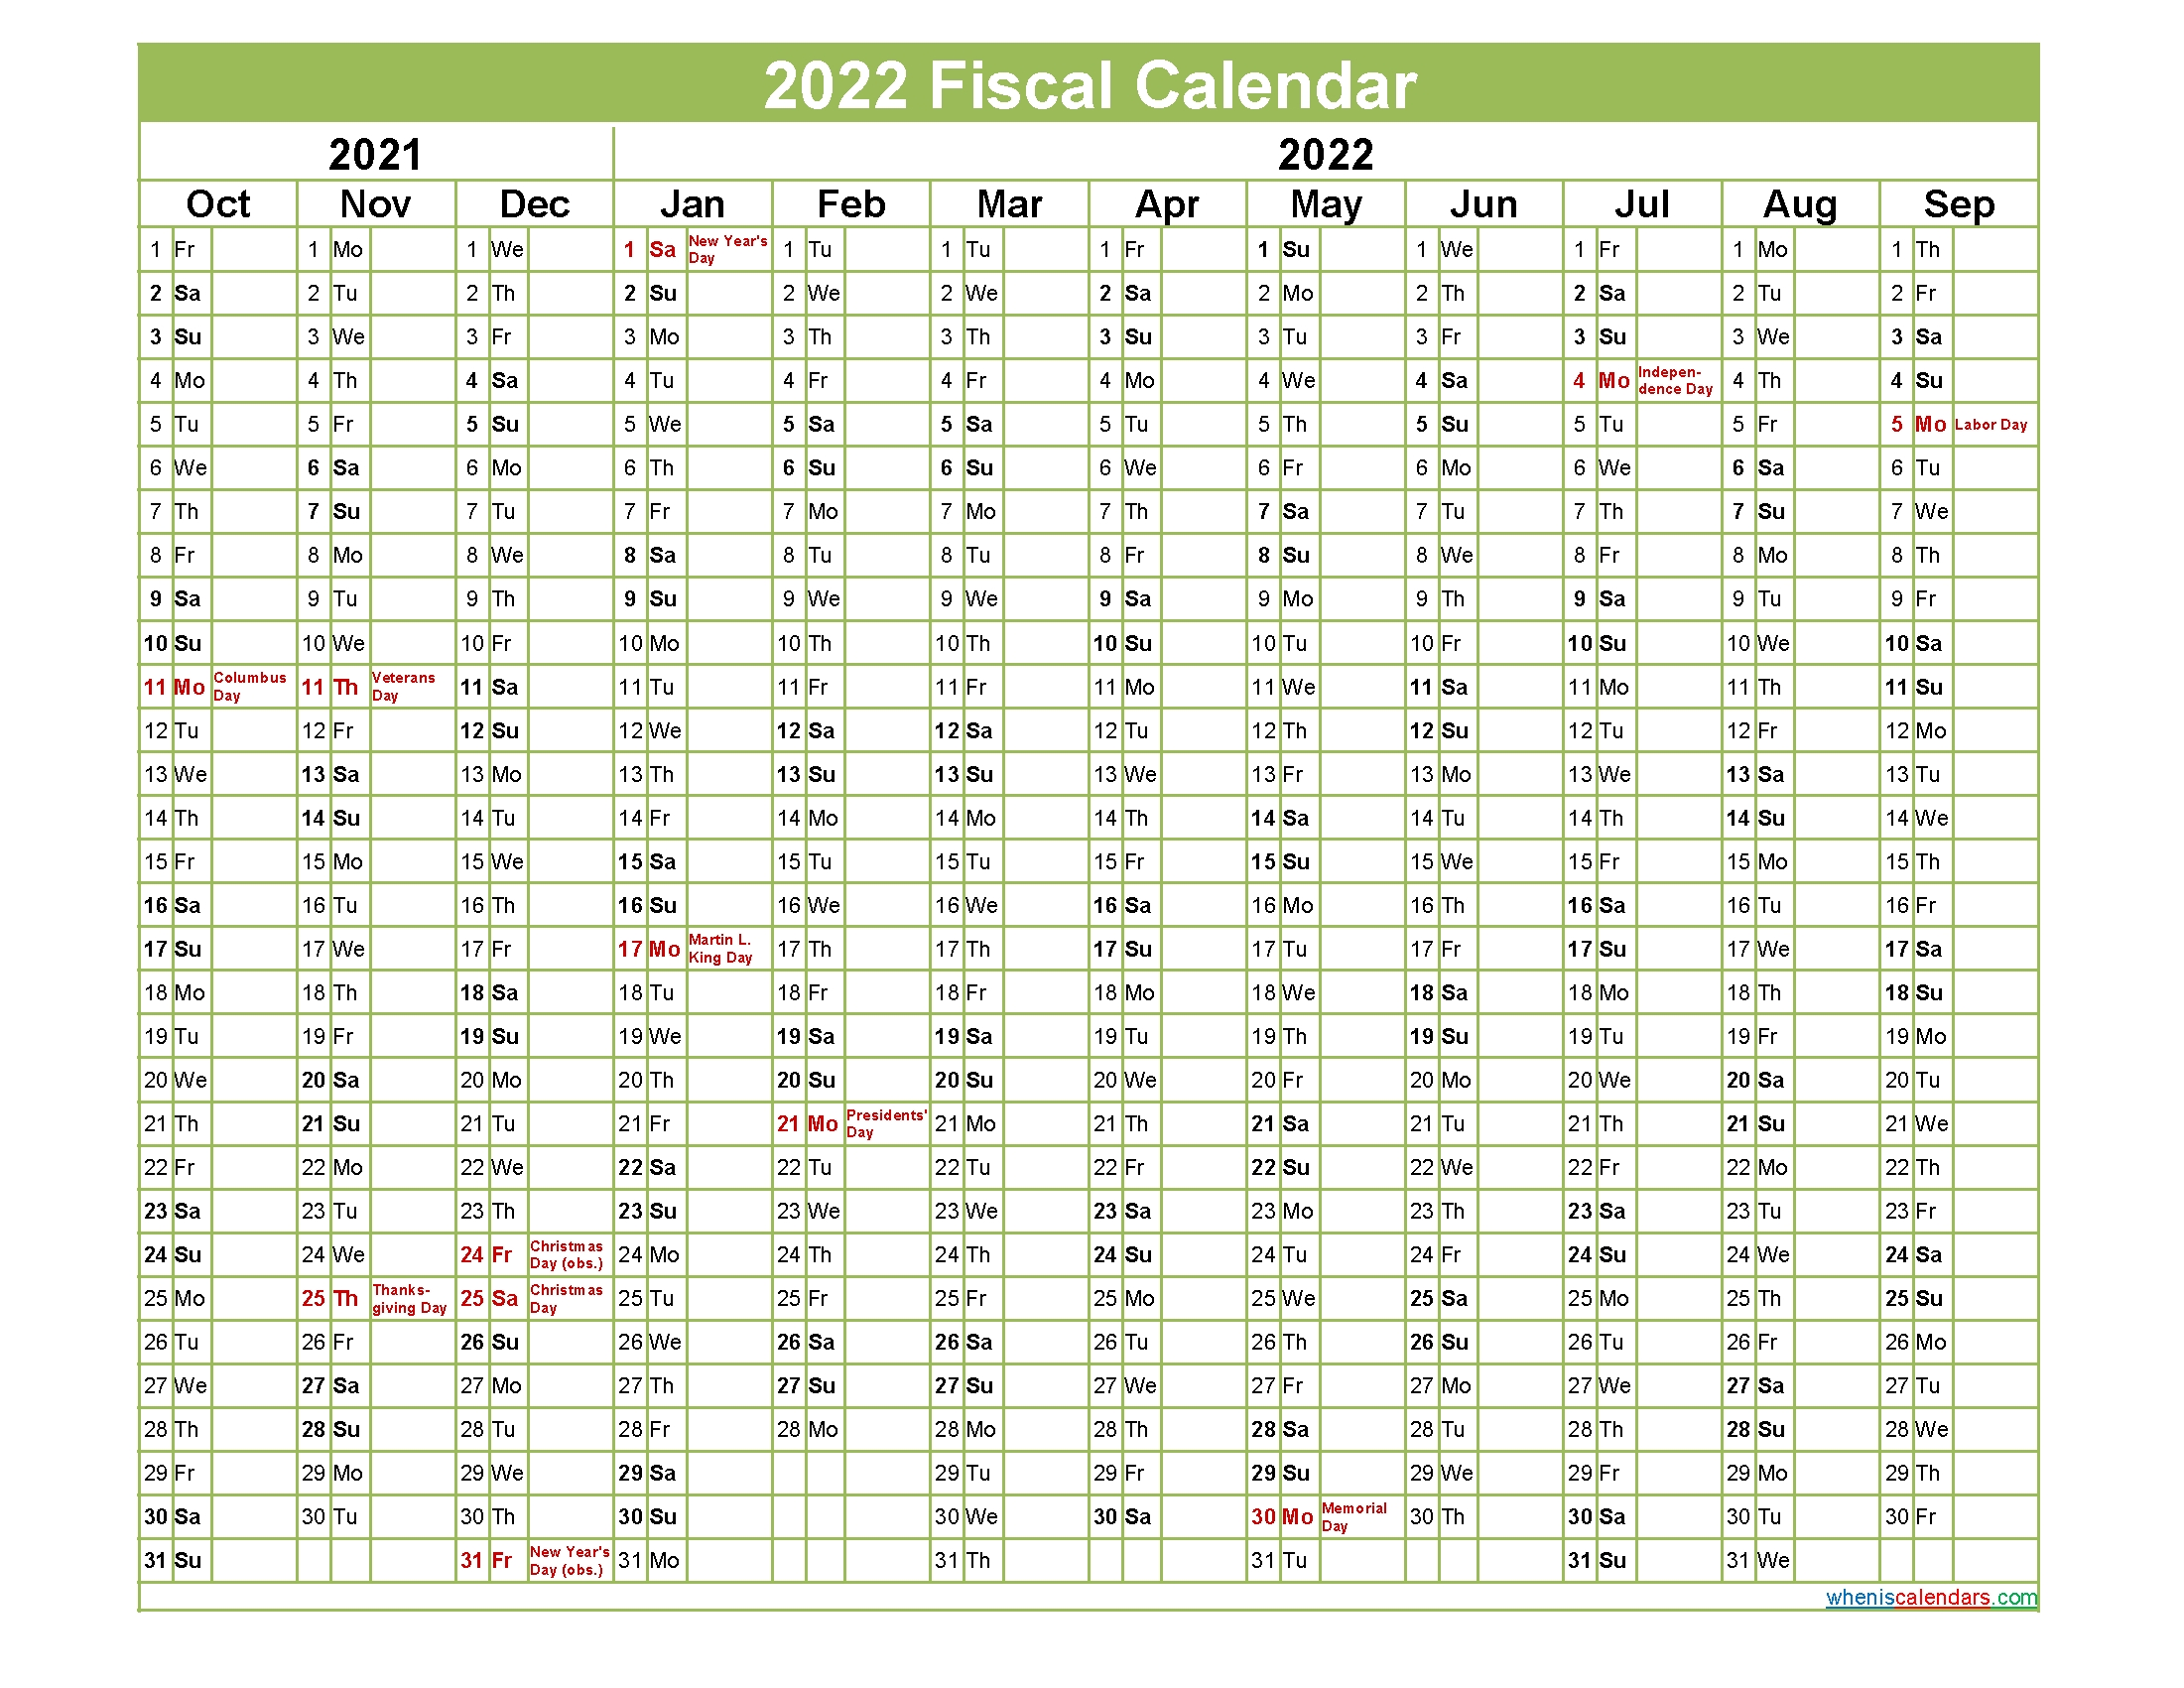 fiscal year 2022 calendar – template no fiscal22y37 – free